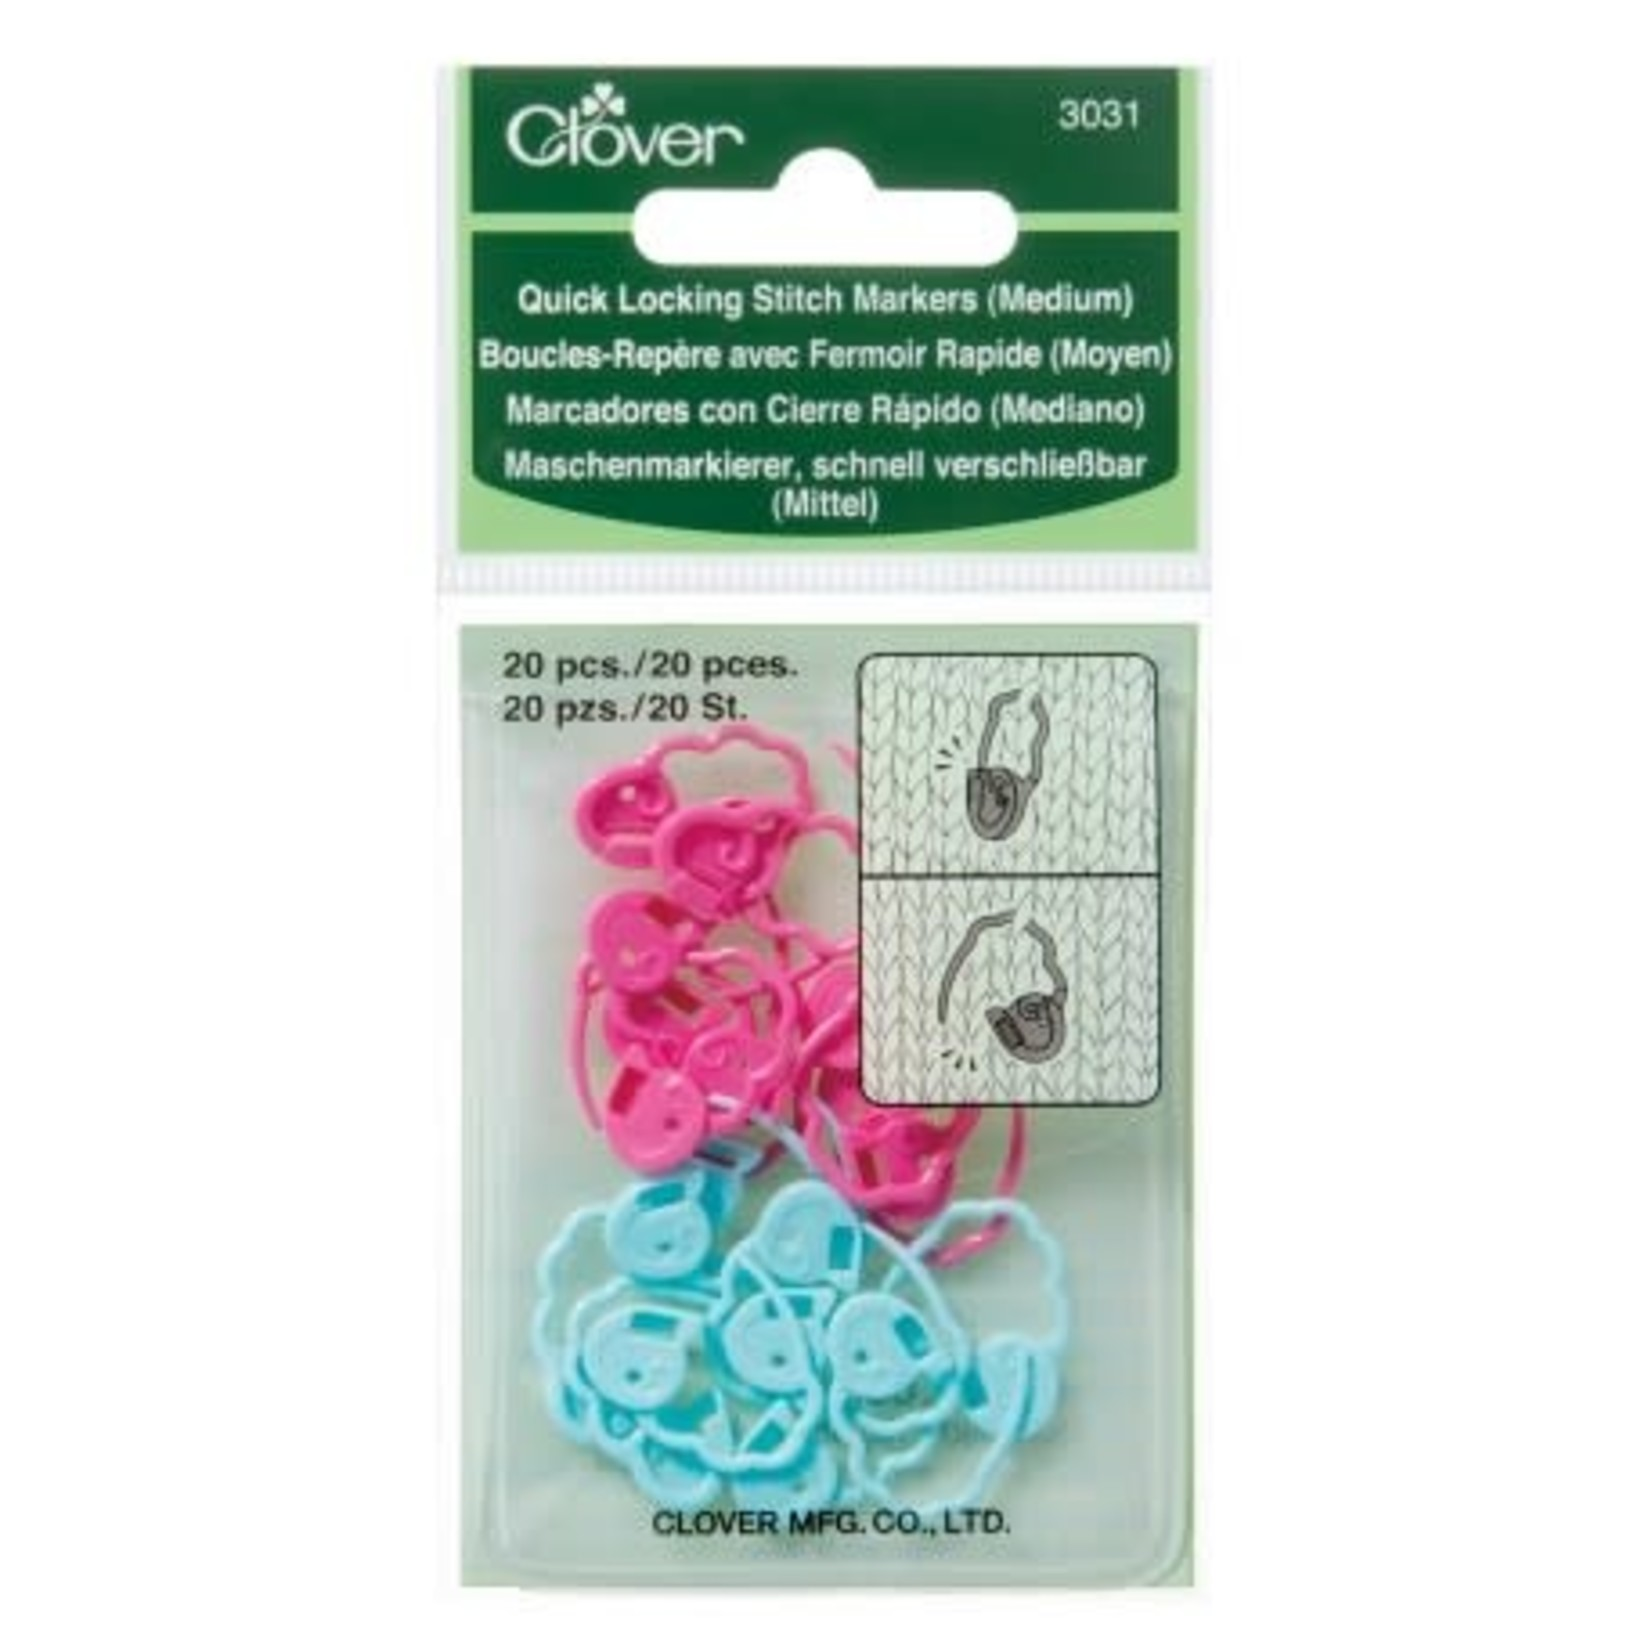 Clover Clover Quick Locking Stitch Markers (Medium)